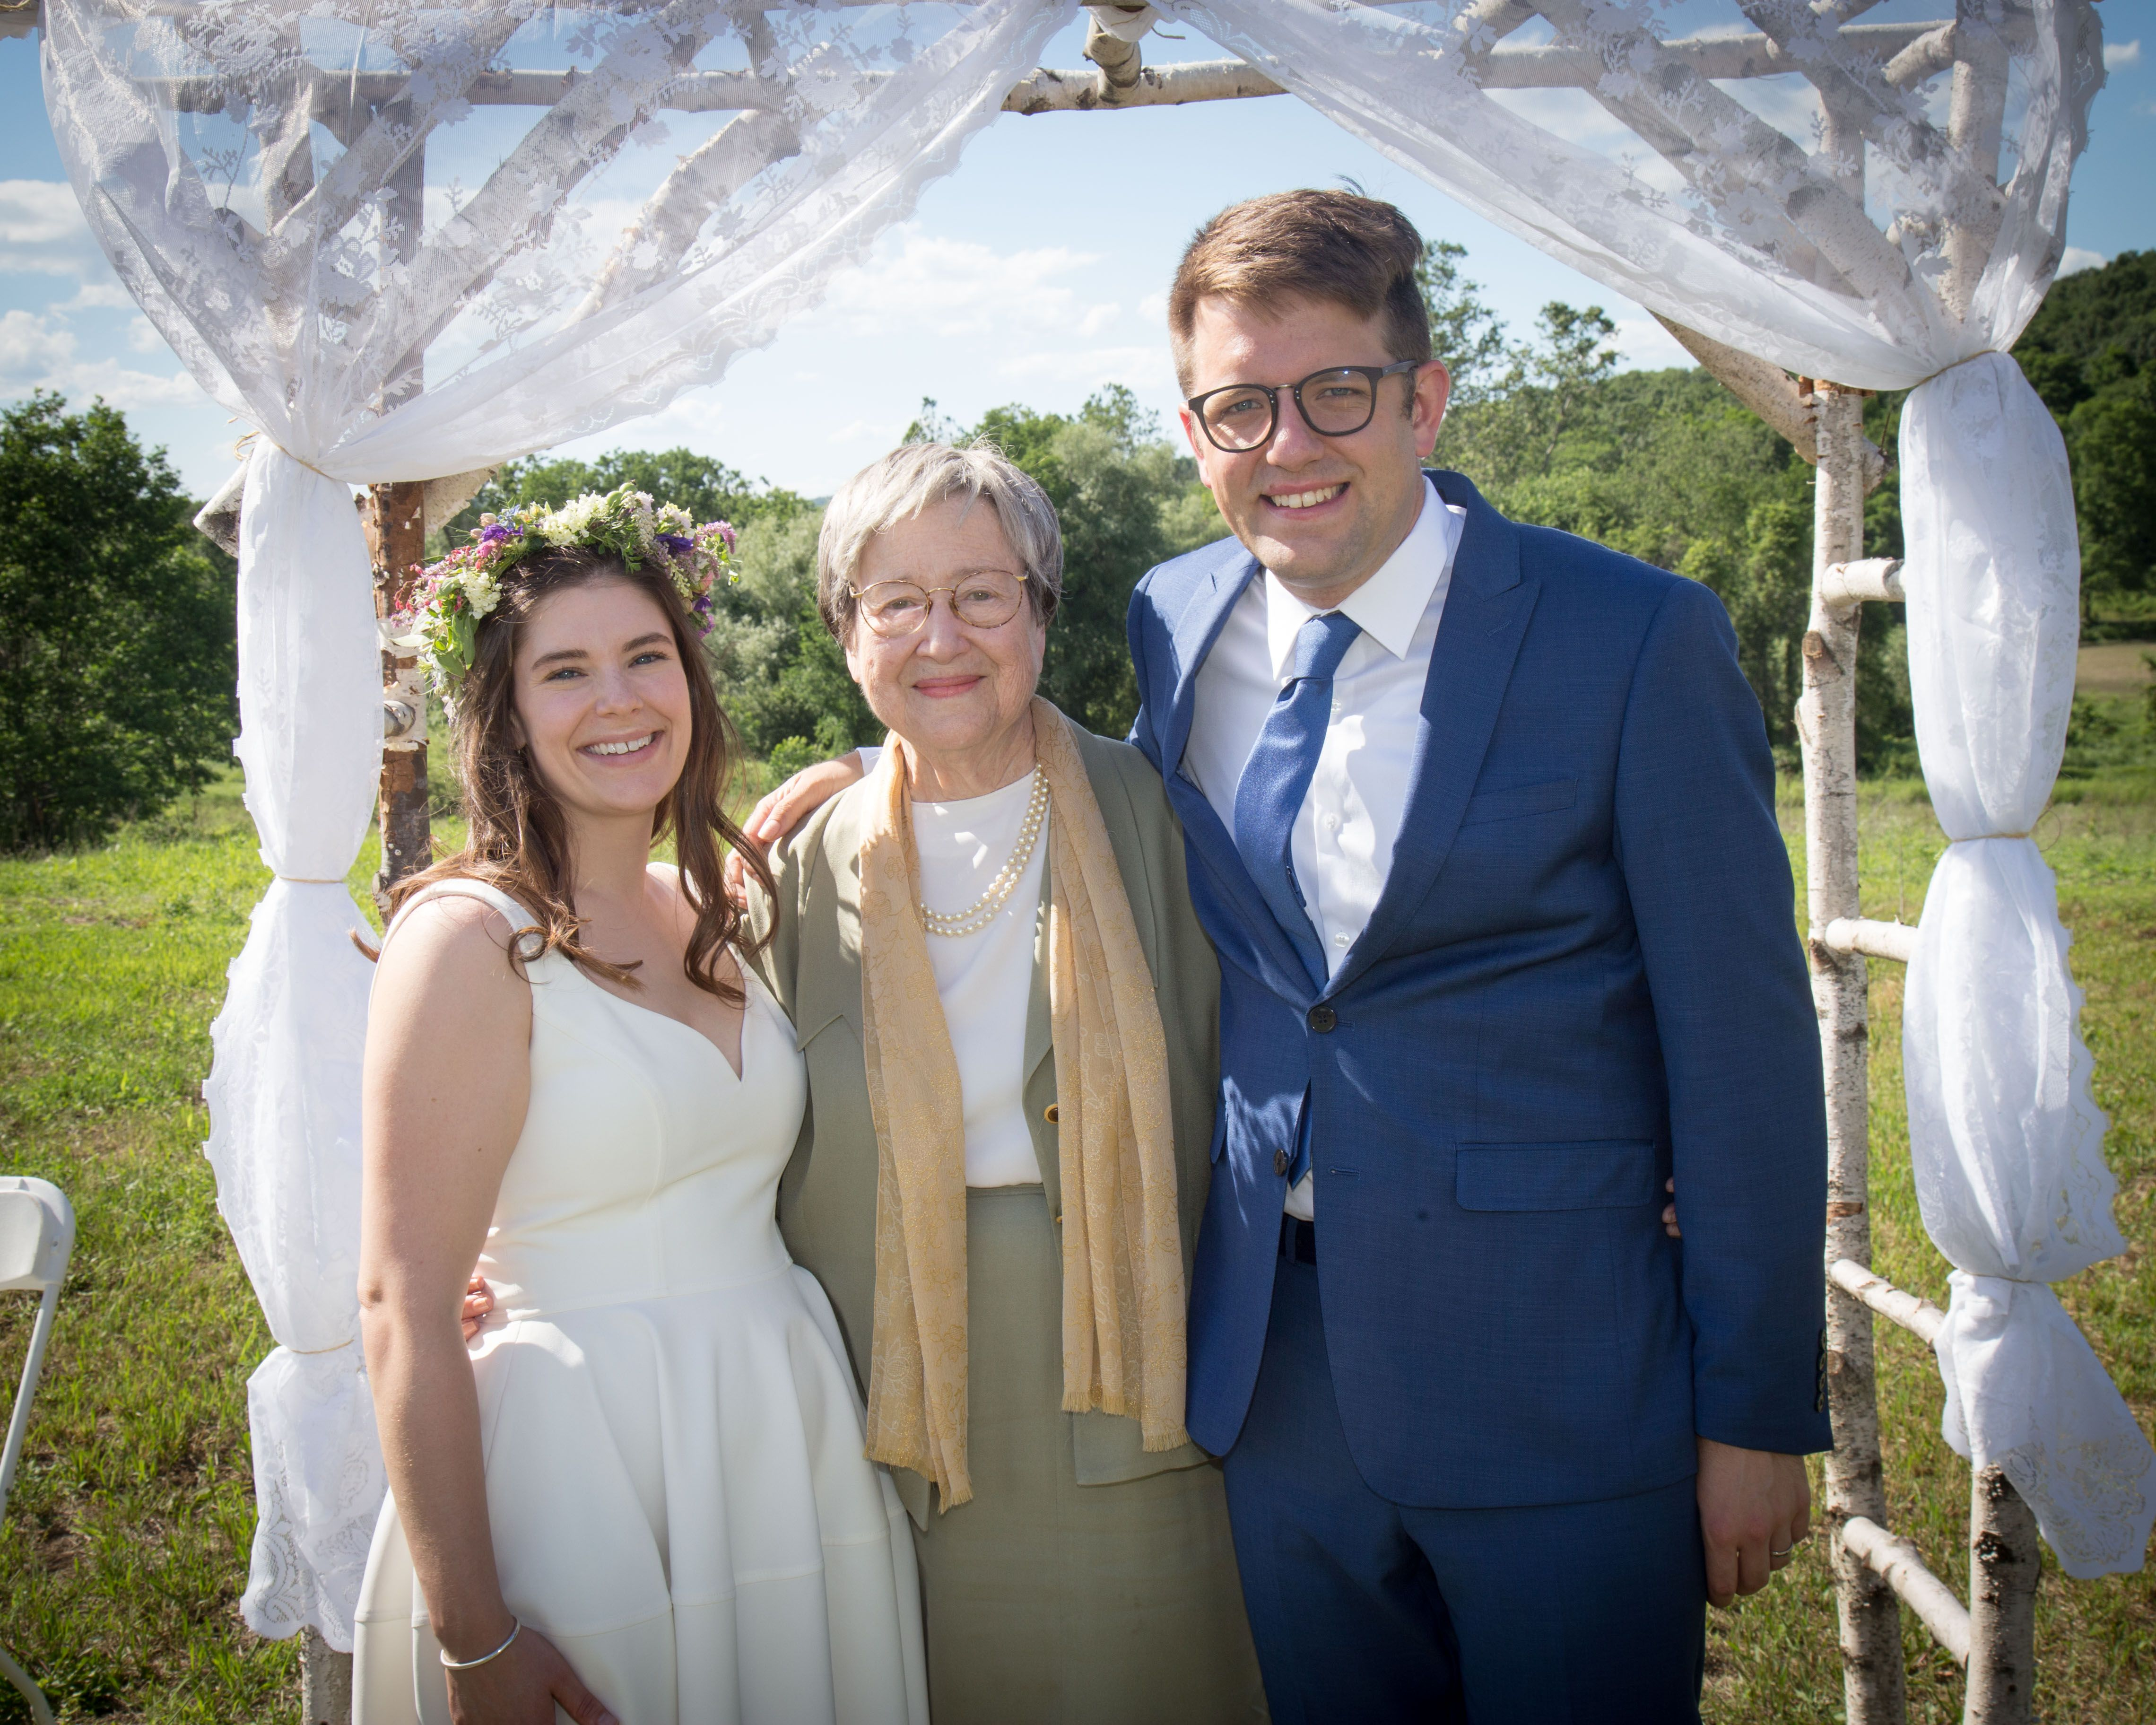 HUDSON VALLEY AREA OFFICIANT Say I DO With Modern Ceremonies 1914